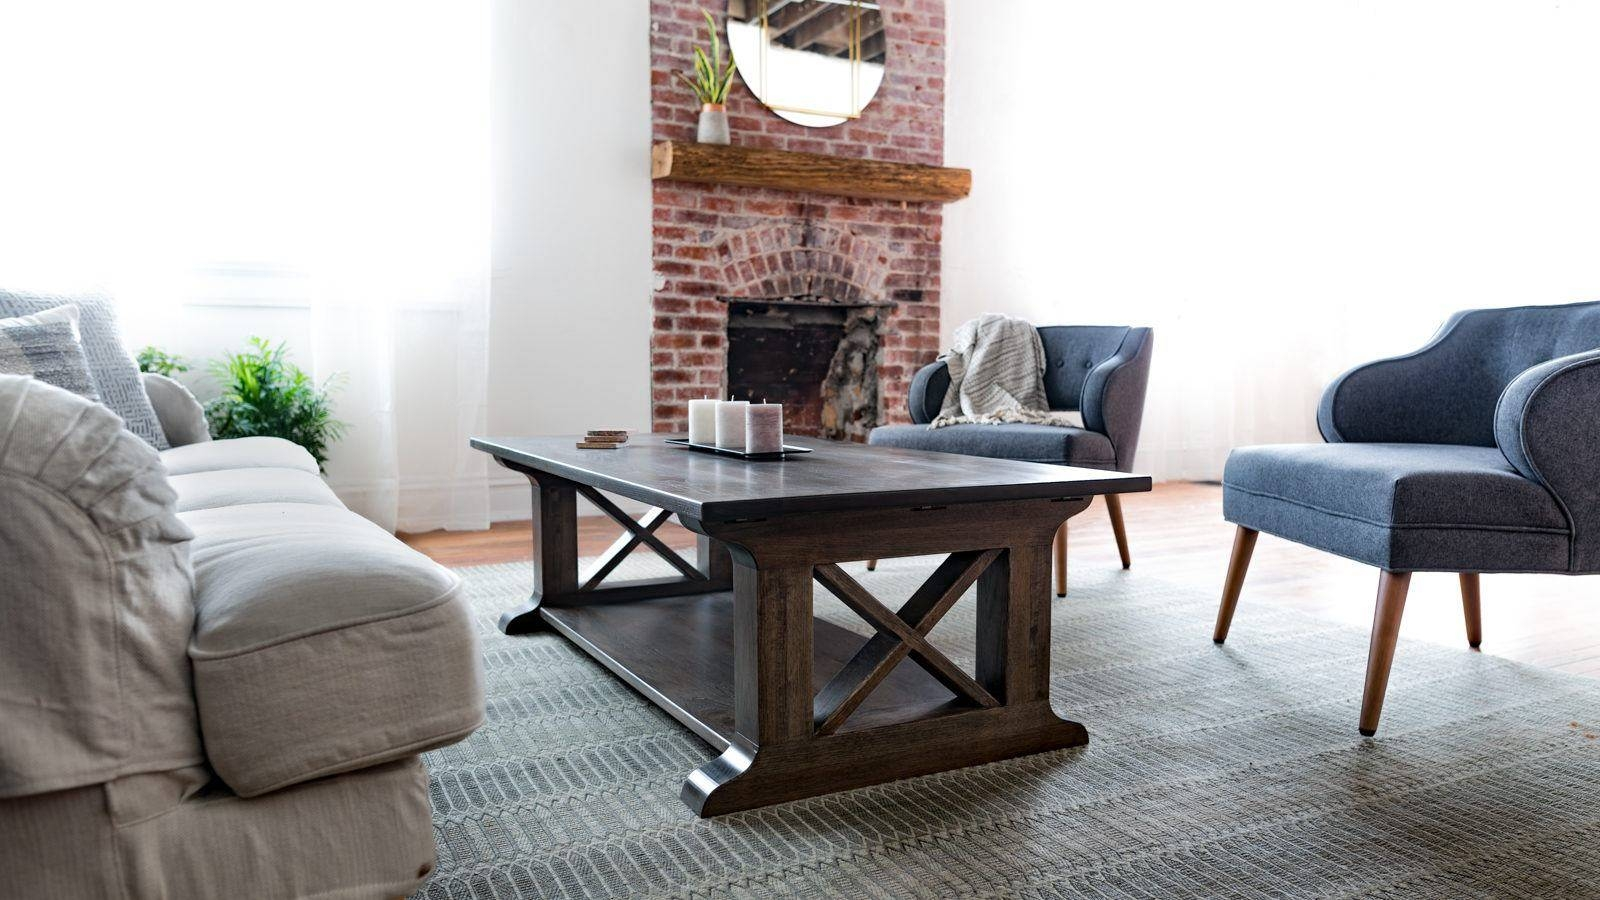 Farmhouse Coffee Table | Old-Farm Rustic Style Living Room Furniture regarding Farmhouse Coffee Tables (Image 8 of 15)